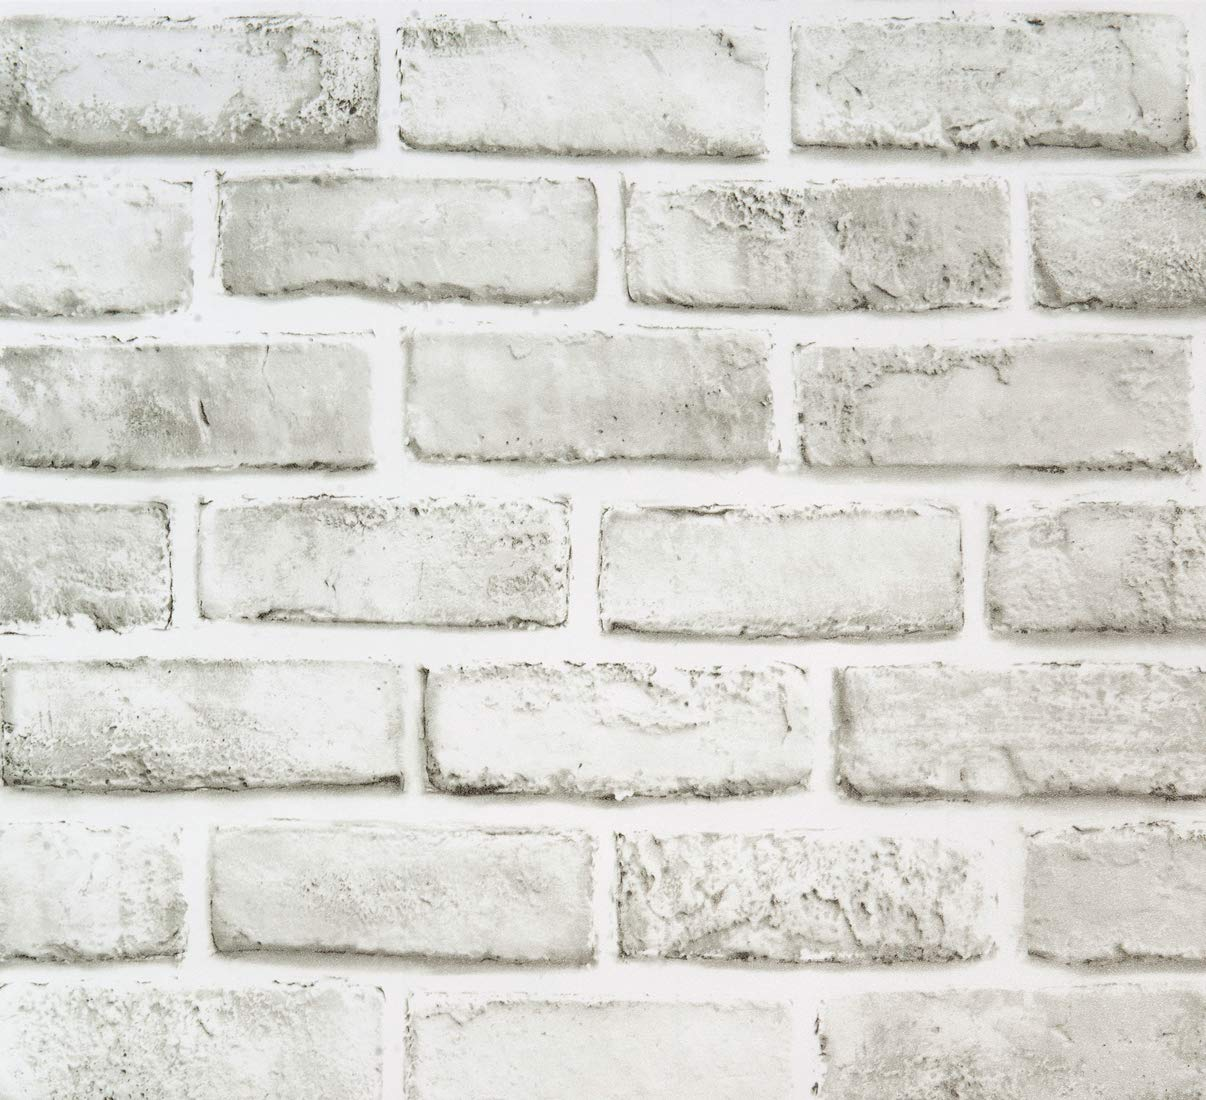 """White Brick Peel and Stick Wallpaper Removable Contact Paper Cleanable Wall Paper Shelf Paper Self Adhesive Grey/White Brick Vinyl Pattern Bathroom Backsplash 17.7""""x393.7"""" Fireplace Decoration"""